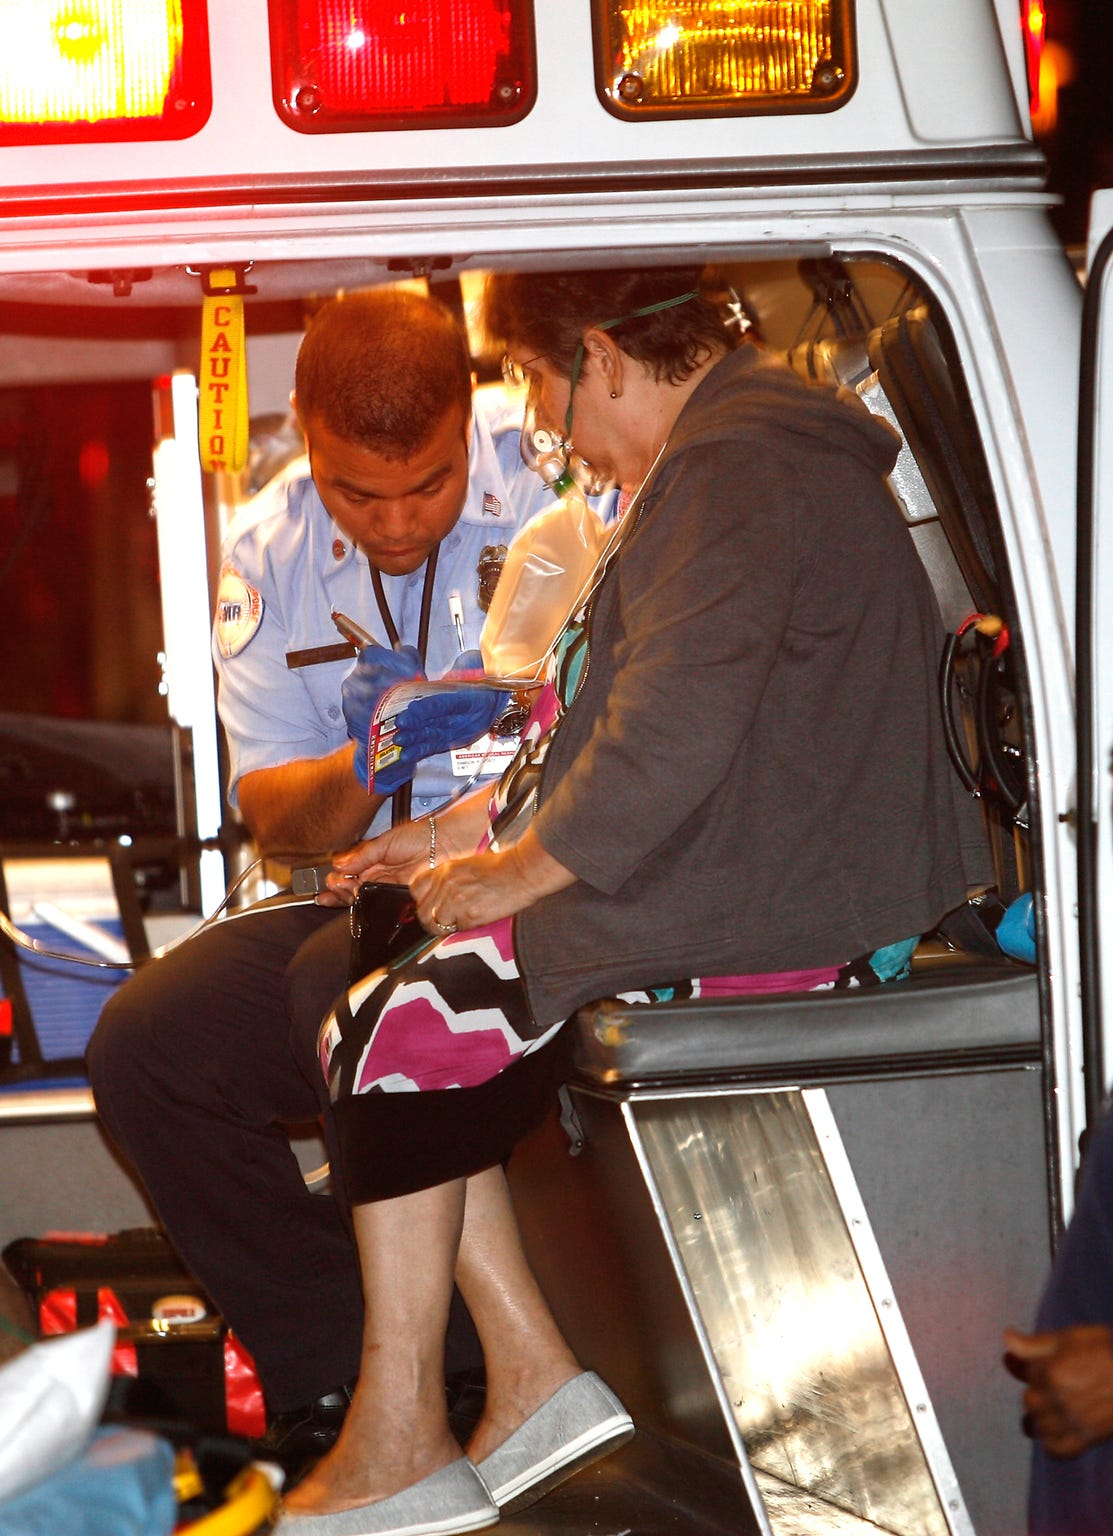 A paramedic treats a victim of an apartment fire at the corner of Sunrise Way and Baristo Road in Palm Springs.